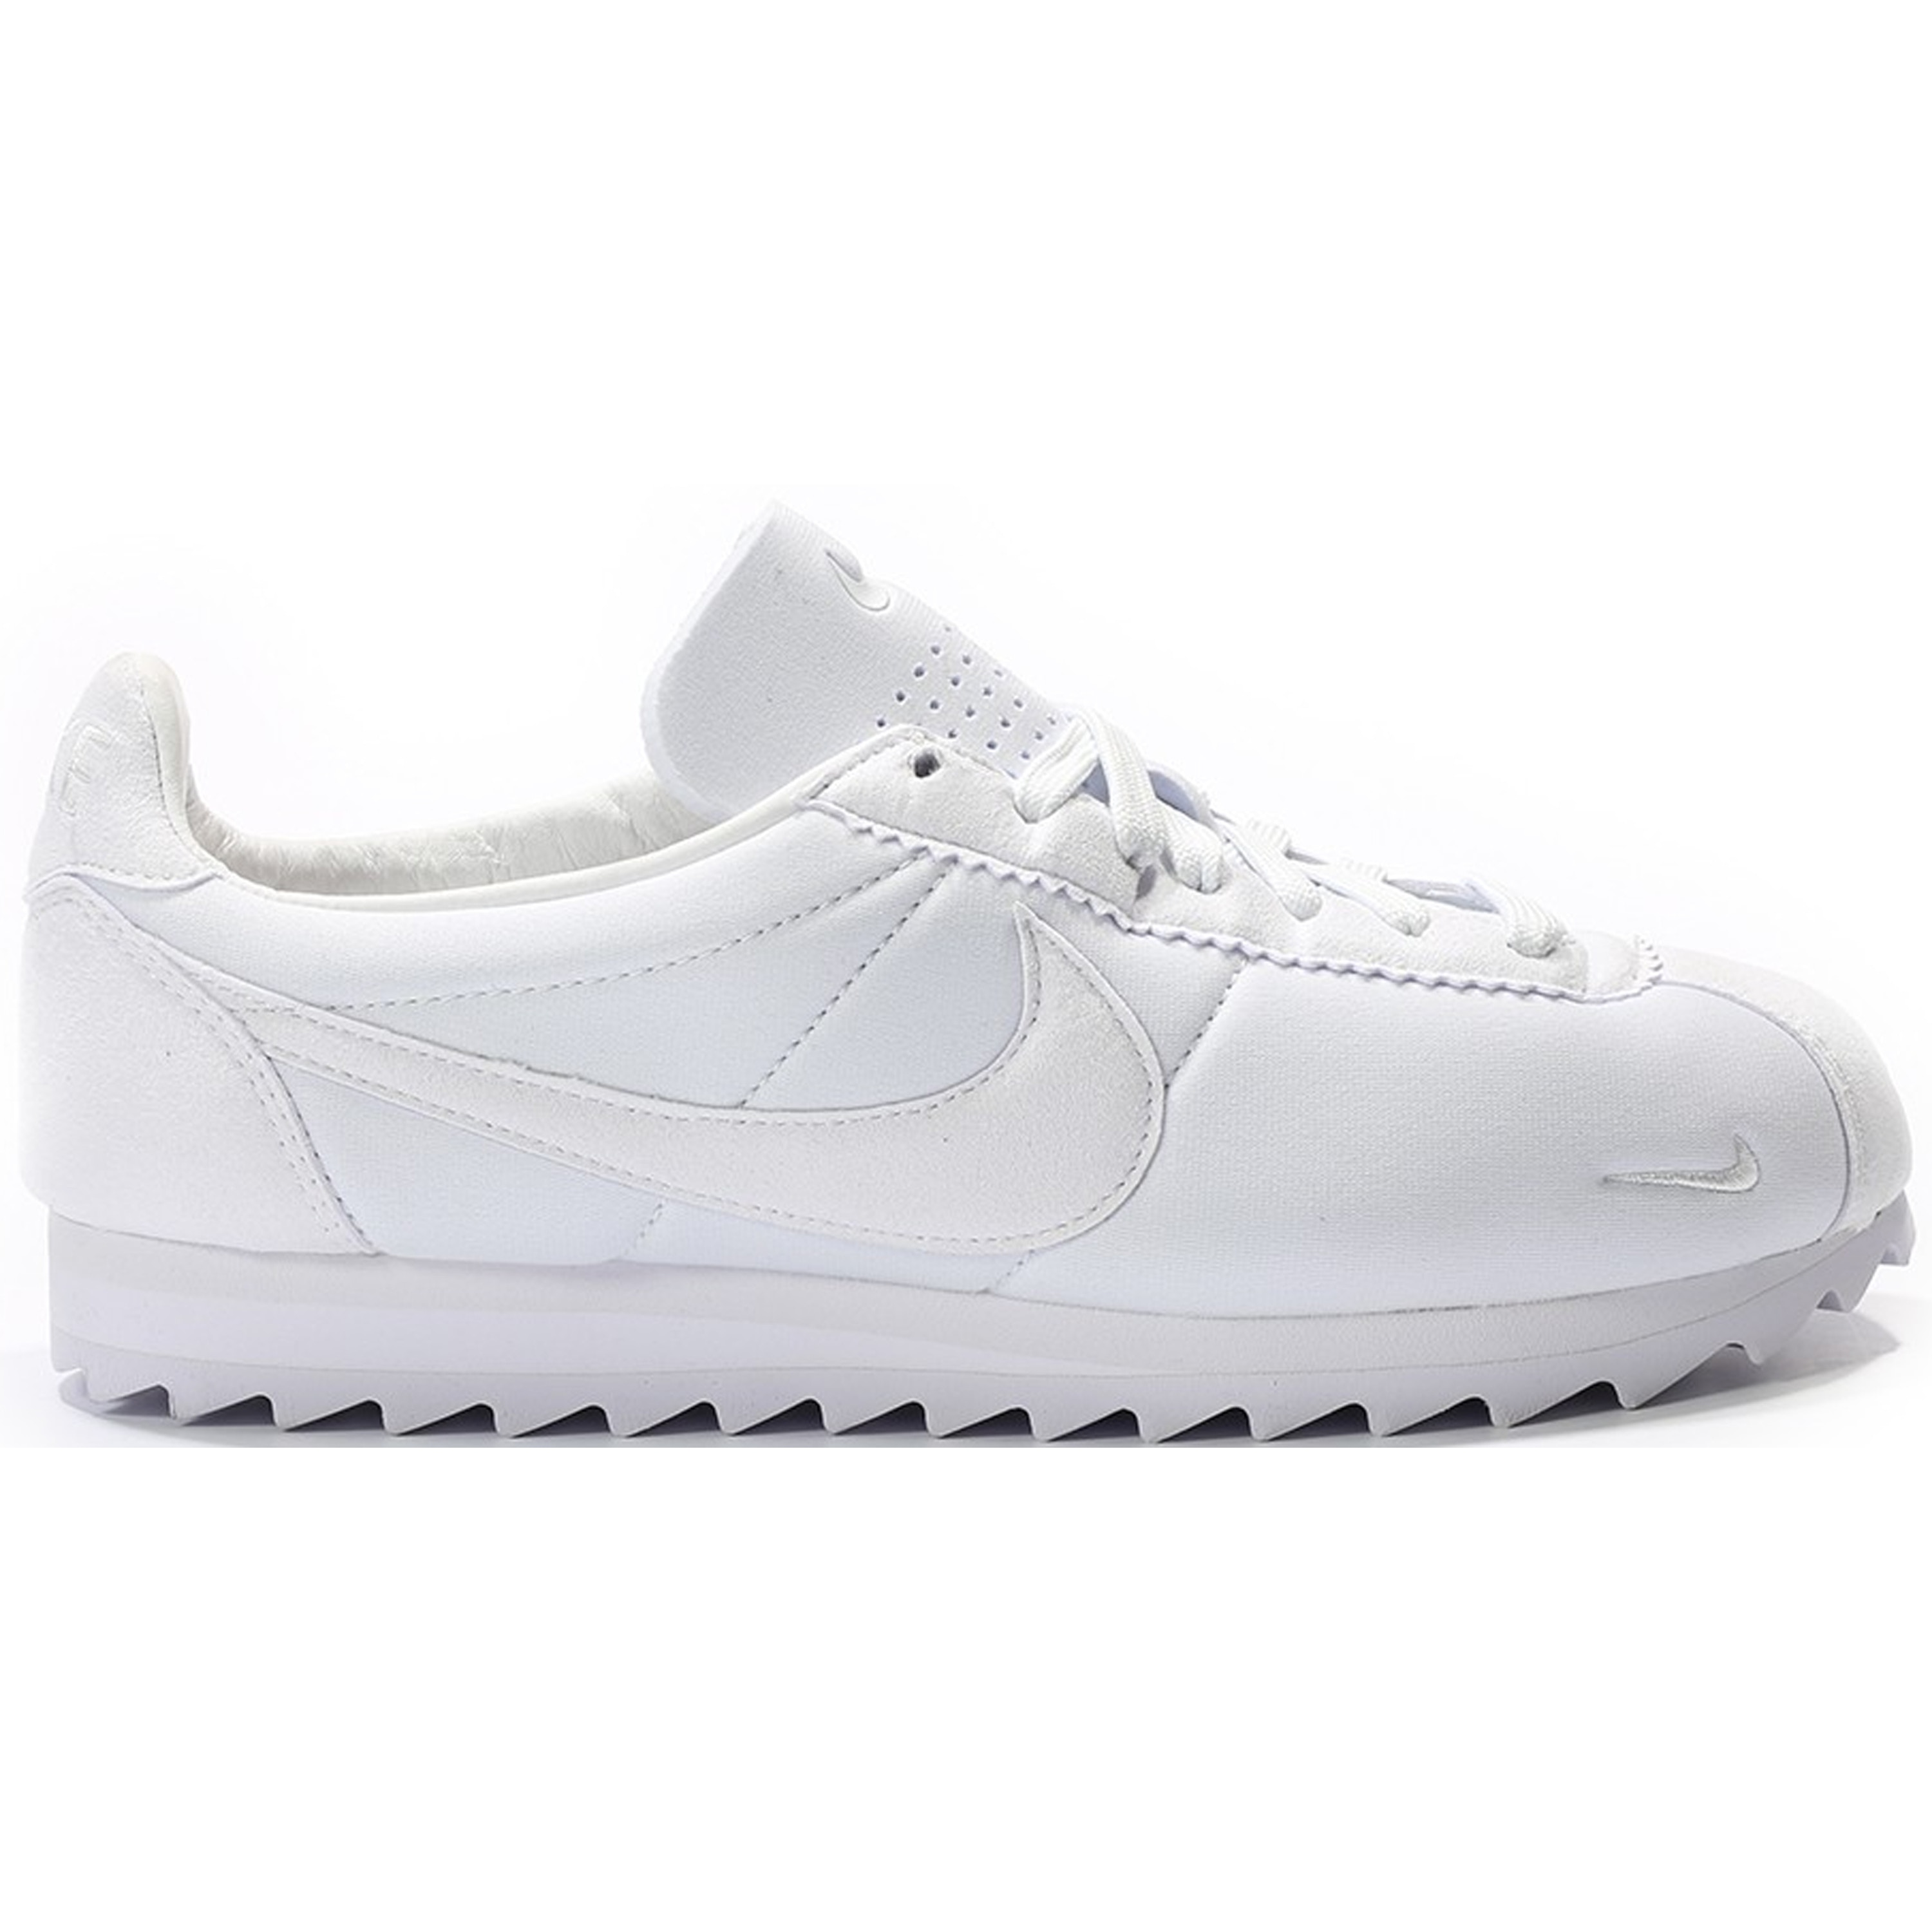 Nike Classic Cortez Shark Big Tooth White Showstopper (2015/2017) (810135-110)